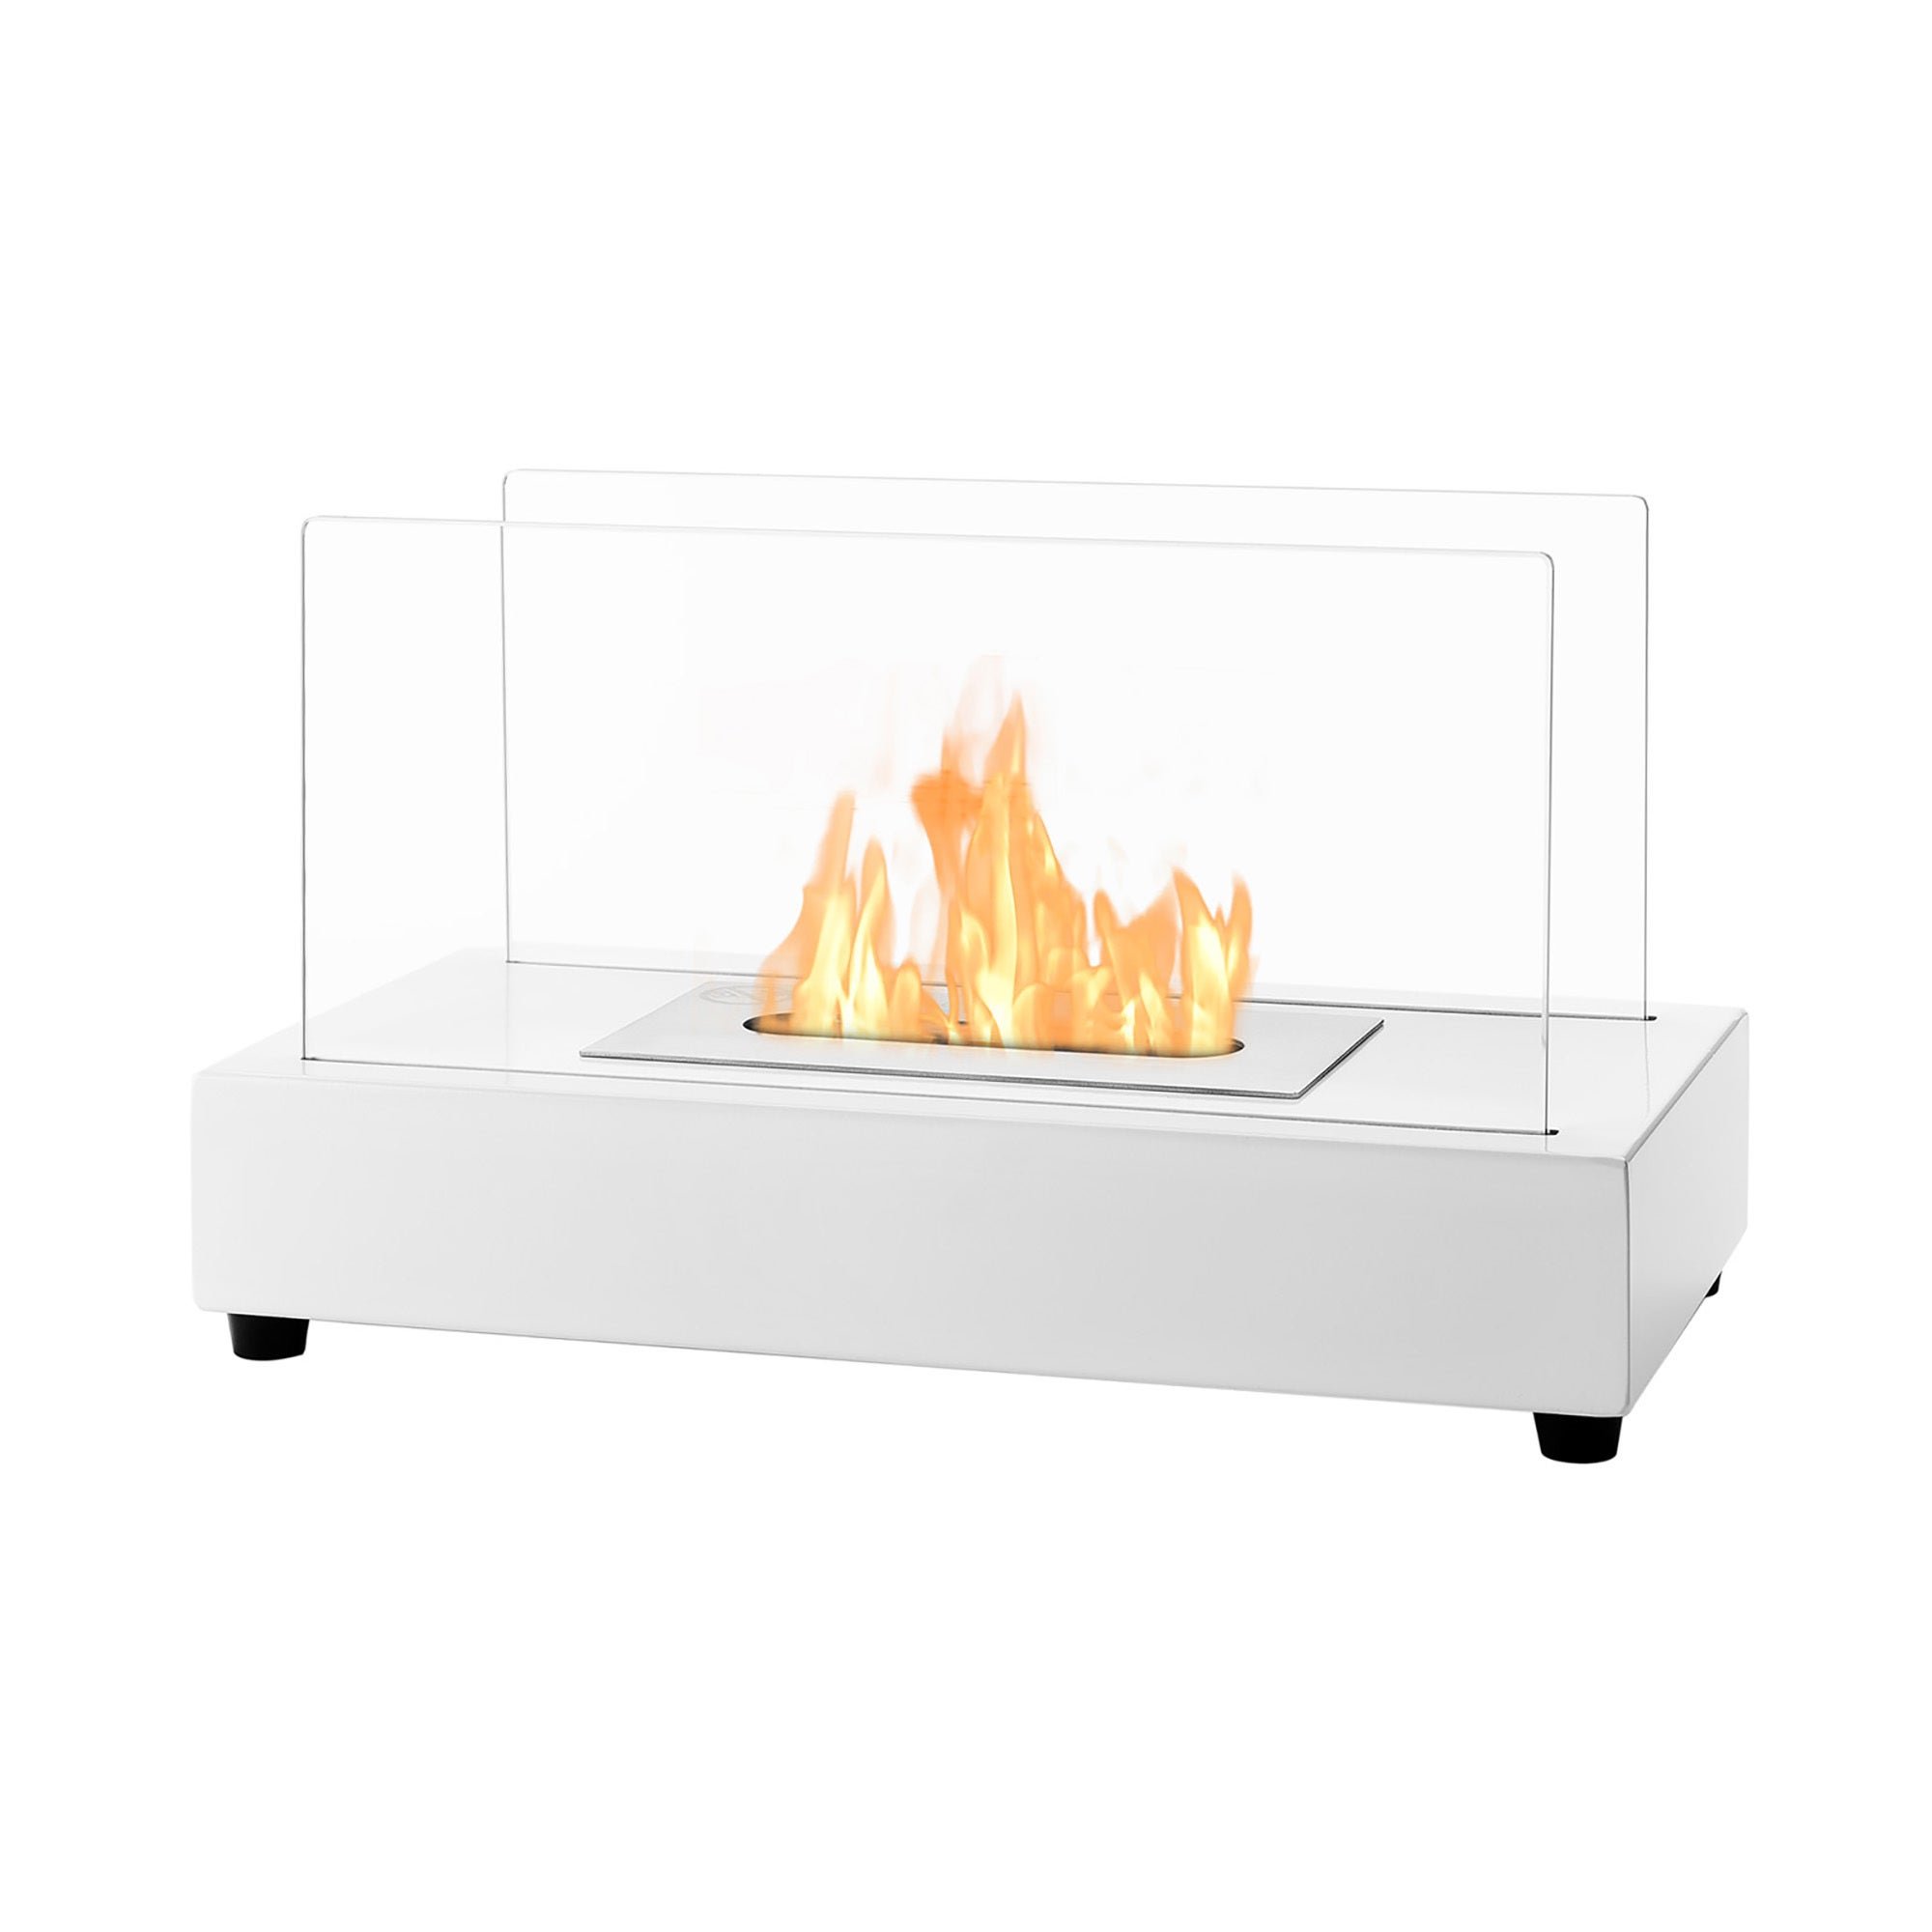 IGNIS Tower White Tabletop Ventless Ethanol Fireplace (Wh...